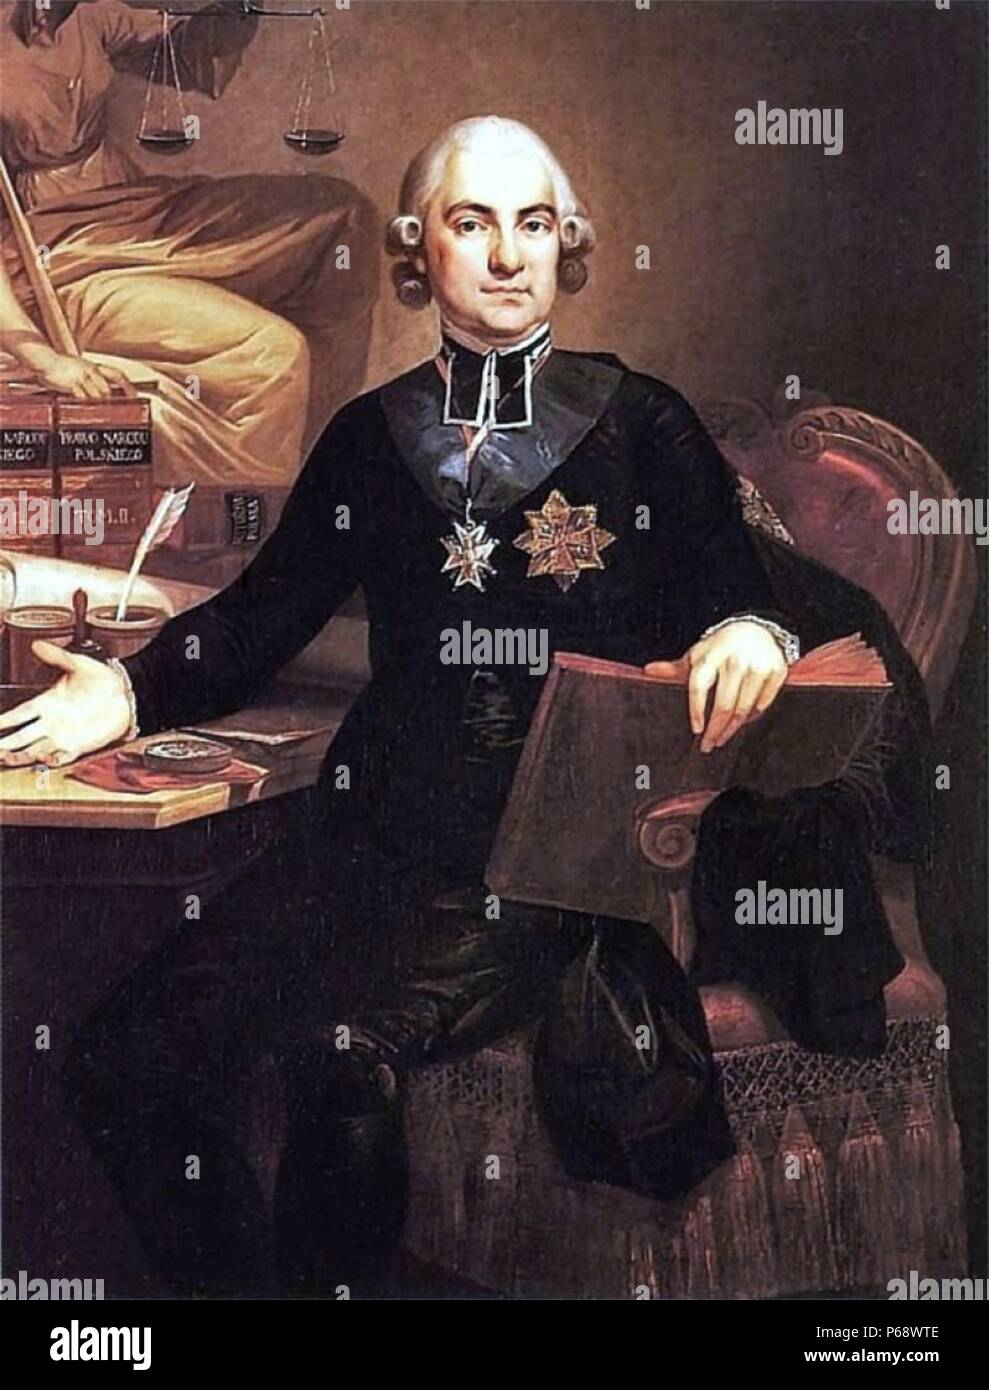 Hugo Stumberg Ko???taj (1750 – 1812) Polish Roman Catholic priest, social and political activist, historian and philosopher. one of the most prominent figures of the Enlightenment in Poland. - Stock Image